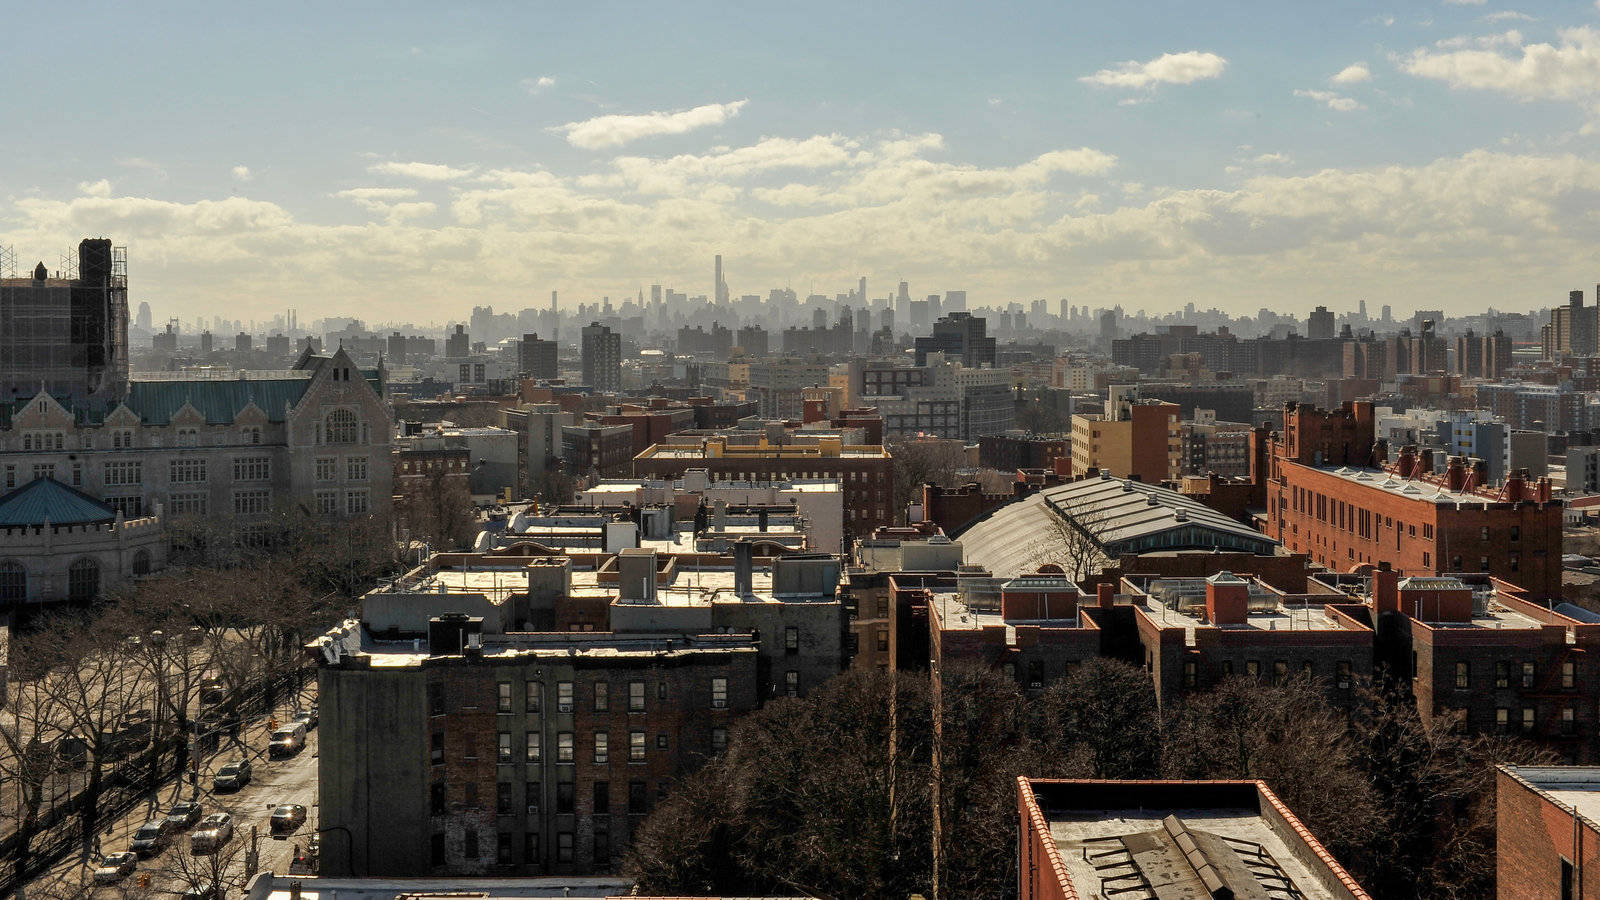 A view of the Morrisania neighborhood